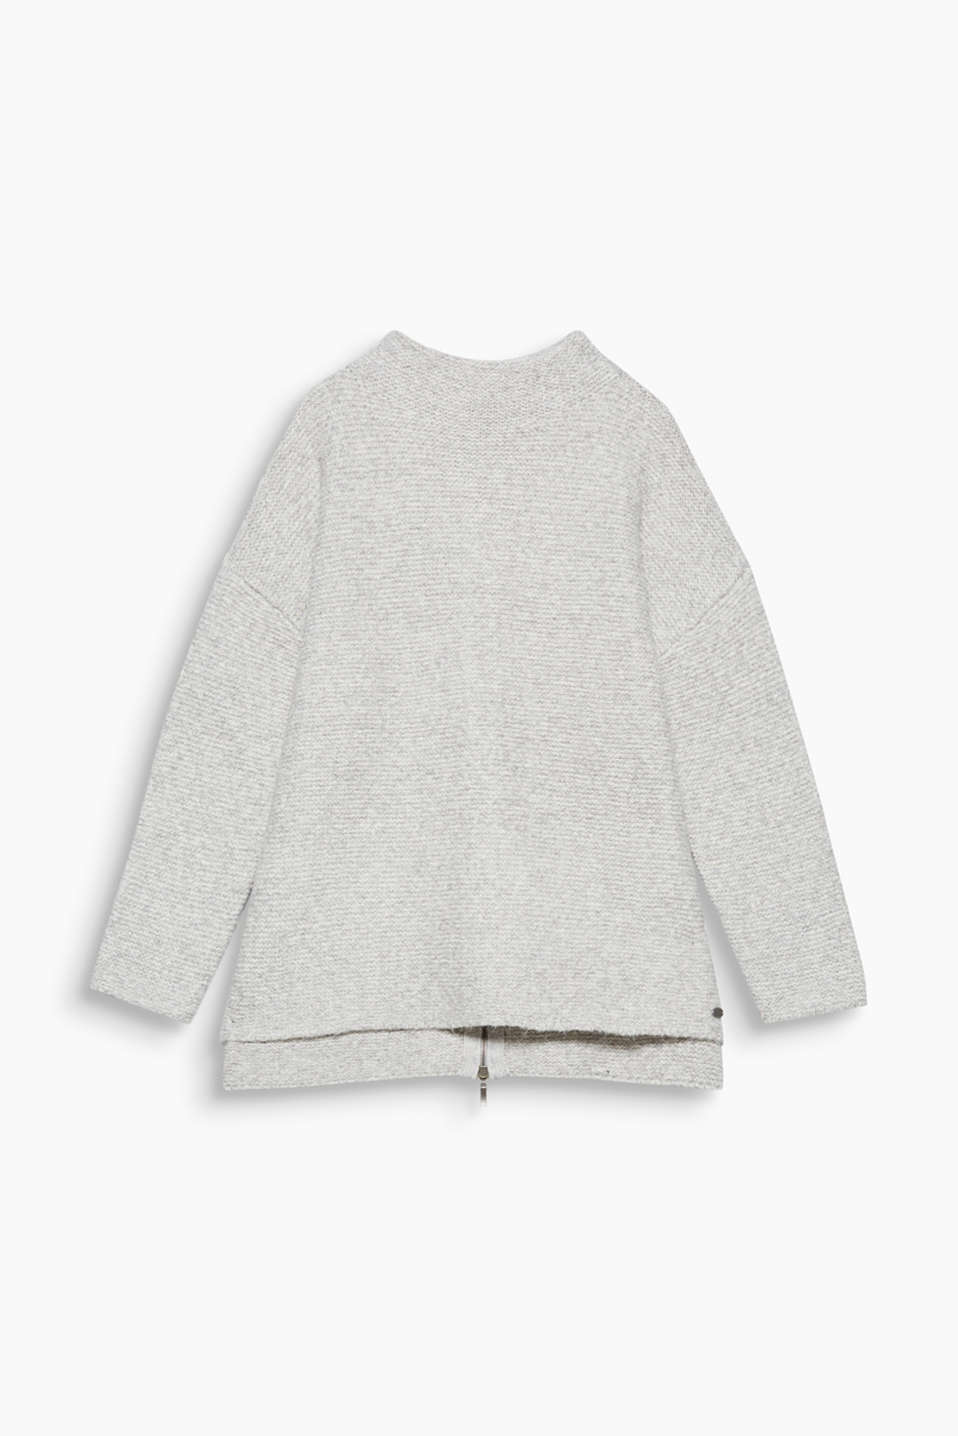 Casual favourite: This melange oversized jumper is bound to impress with its stand-up collar and zip at the back!